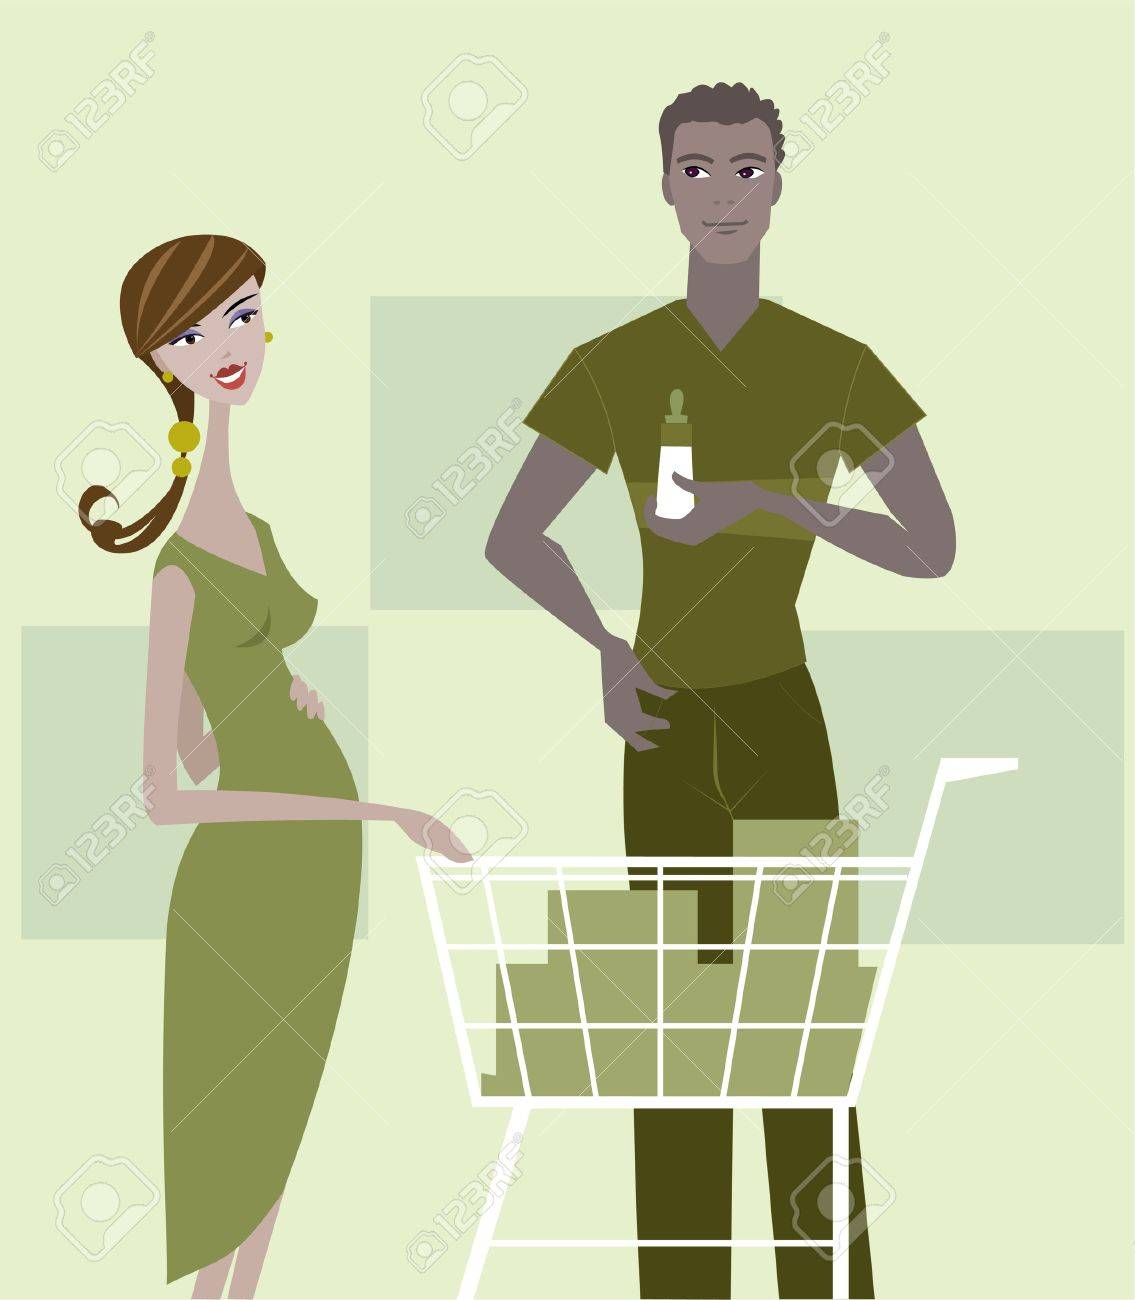 A pregnant woman and man shopping for baby items Stock Photo - 15207697